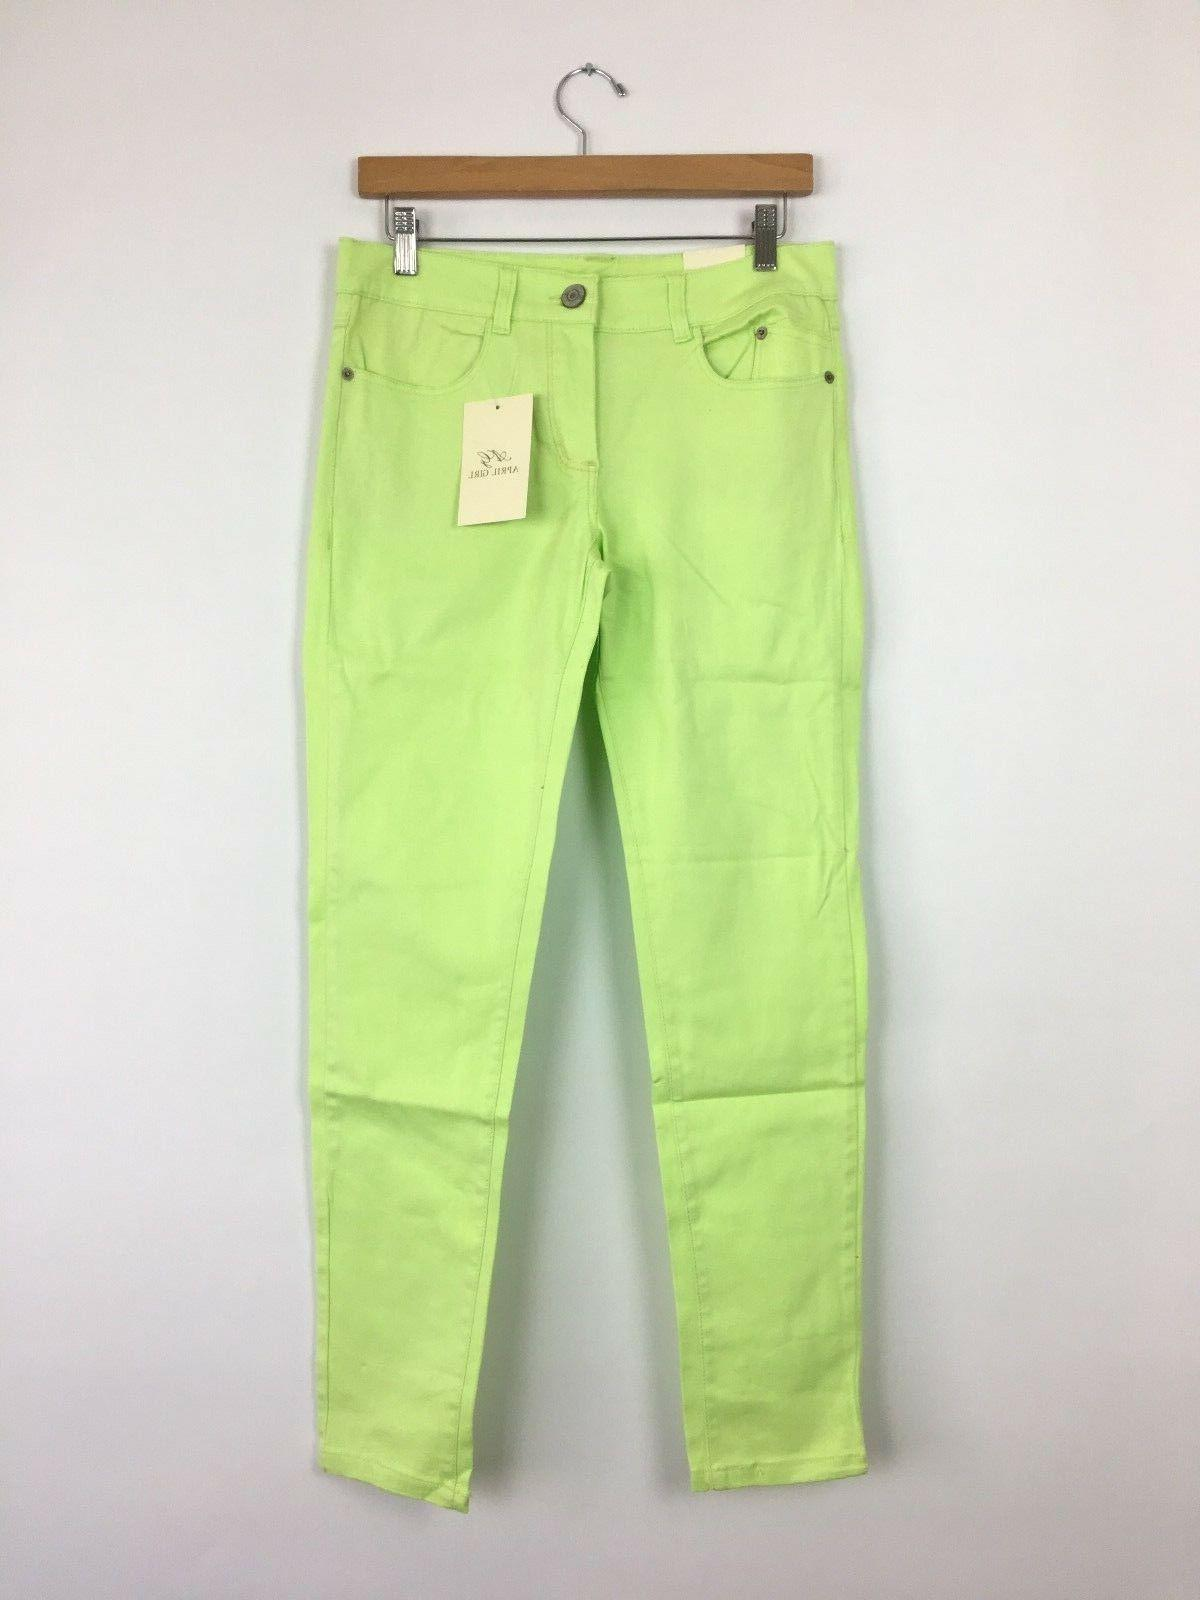 women s vintage mid rise ankle skinny